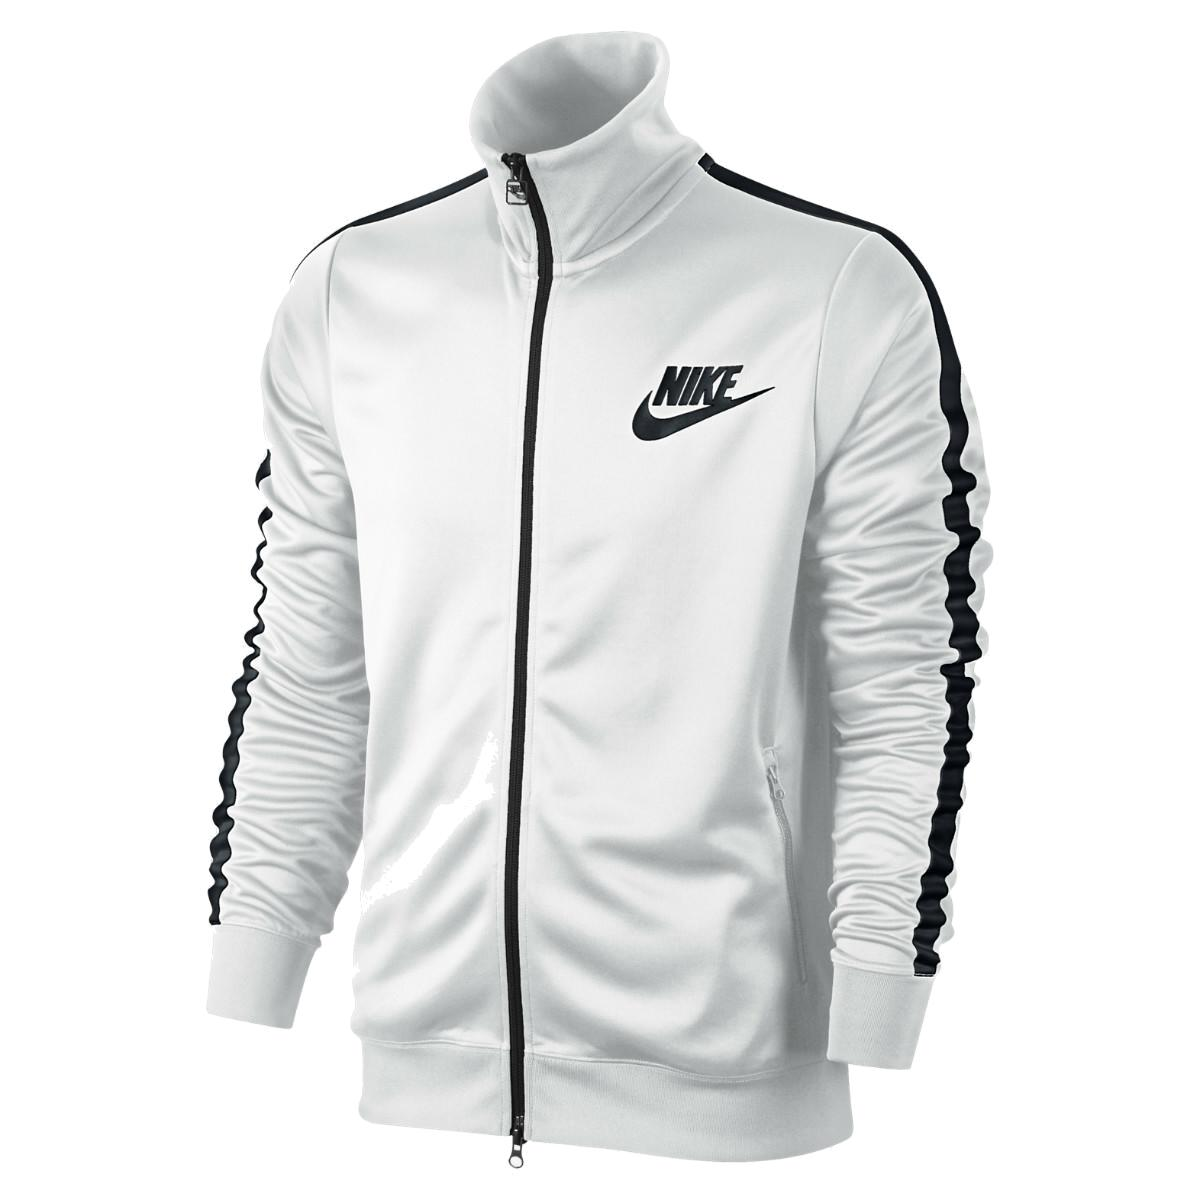 nike logo track jacket herren jacke trainingsjacke. Black Bedroom Furniture Sets. Home Design Ideas